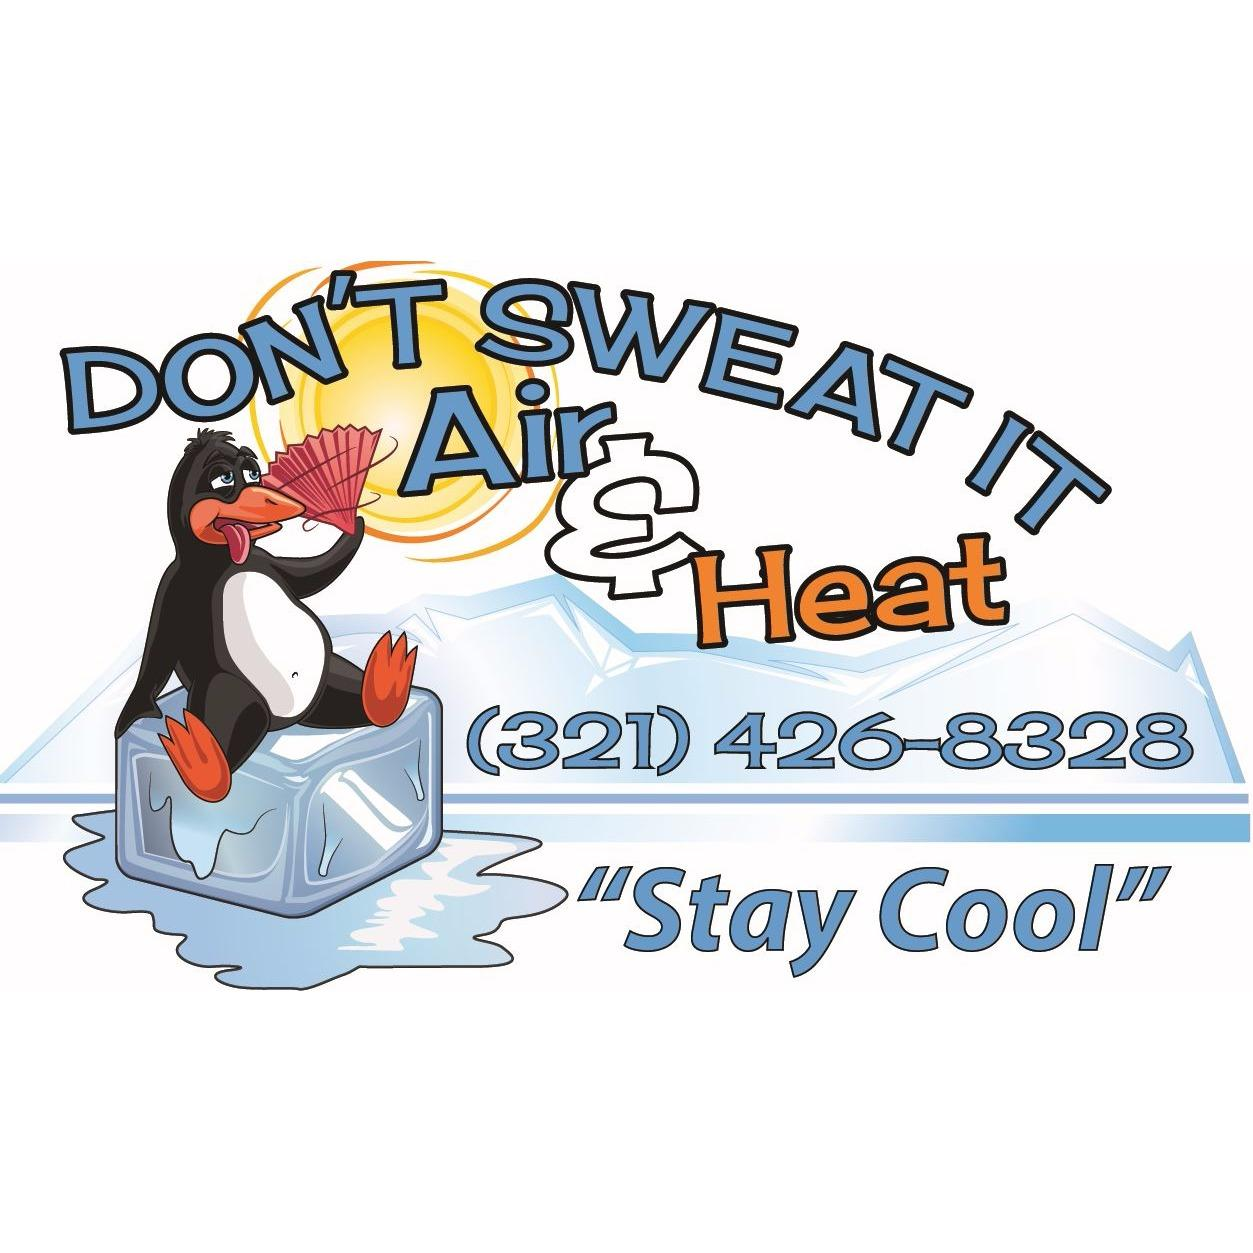 Don't Sweat It Air and Heat, Inc